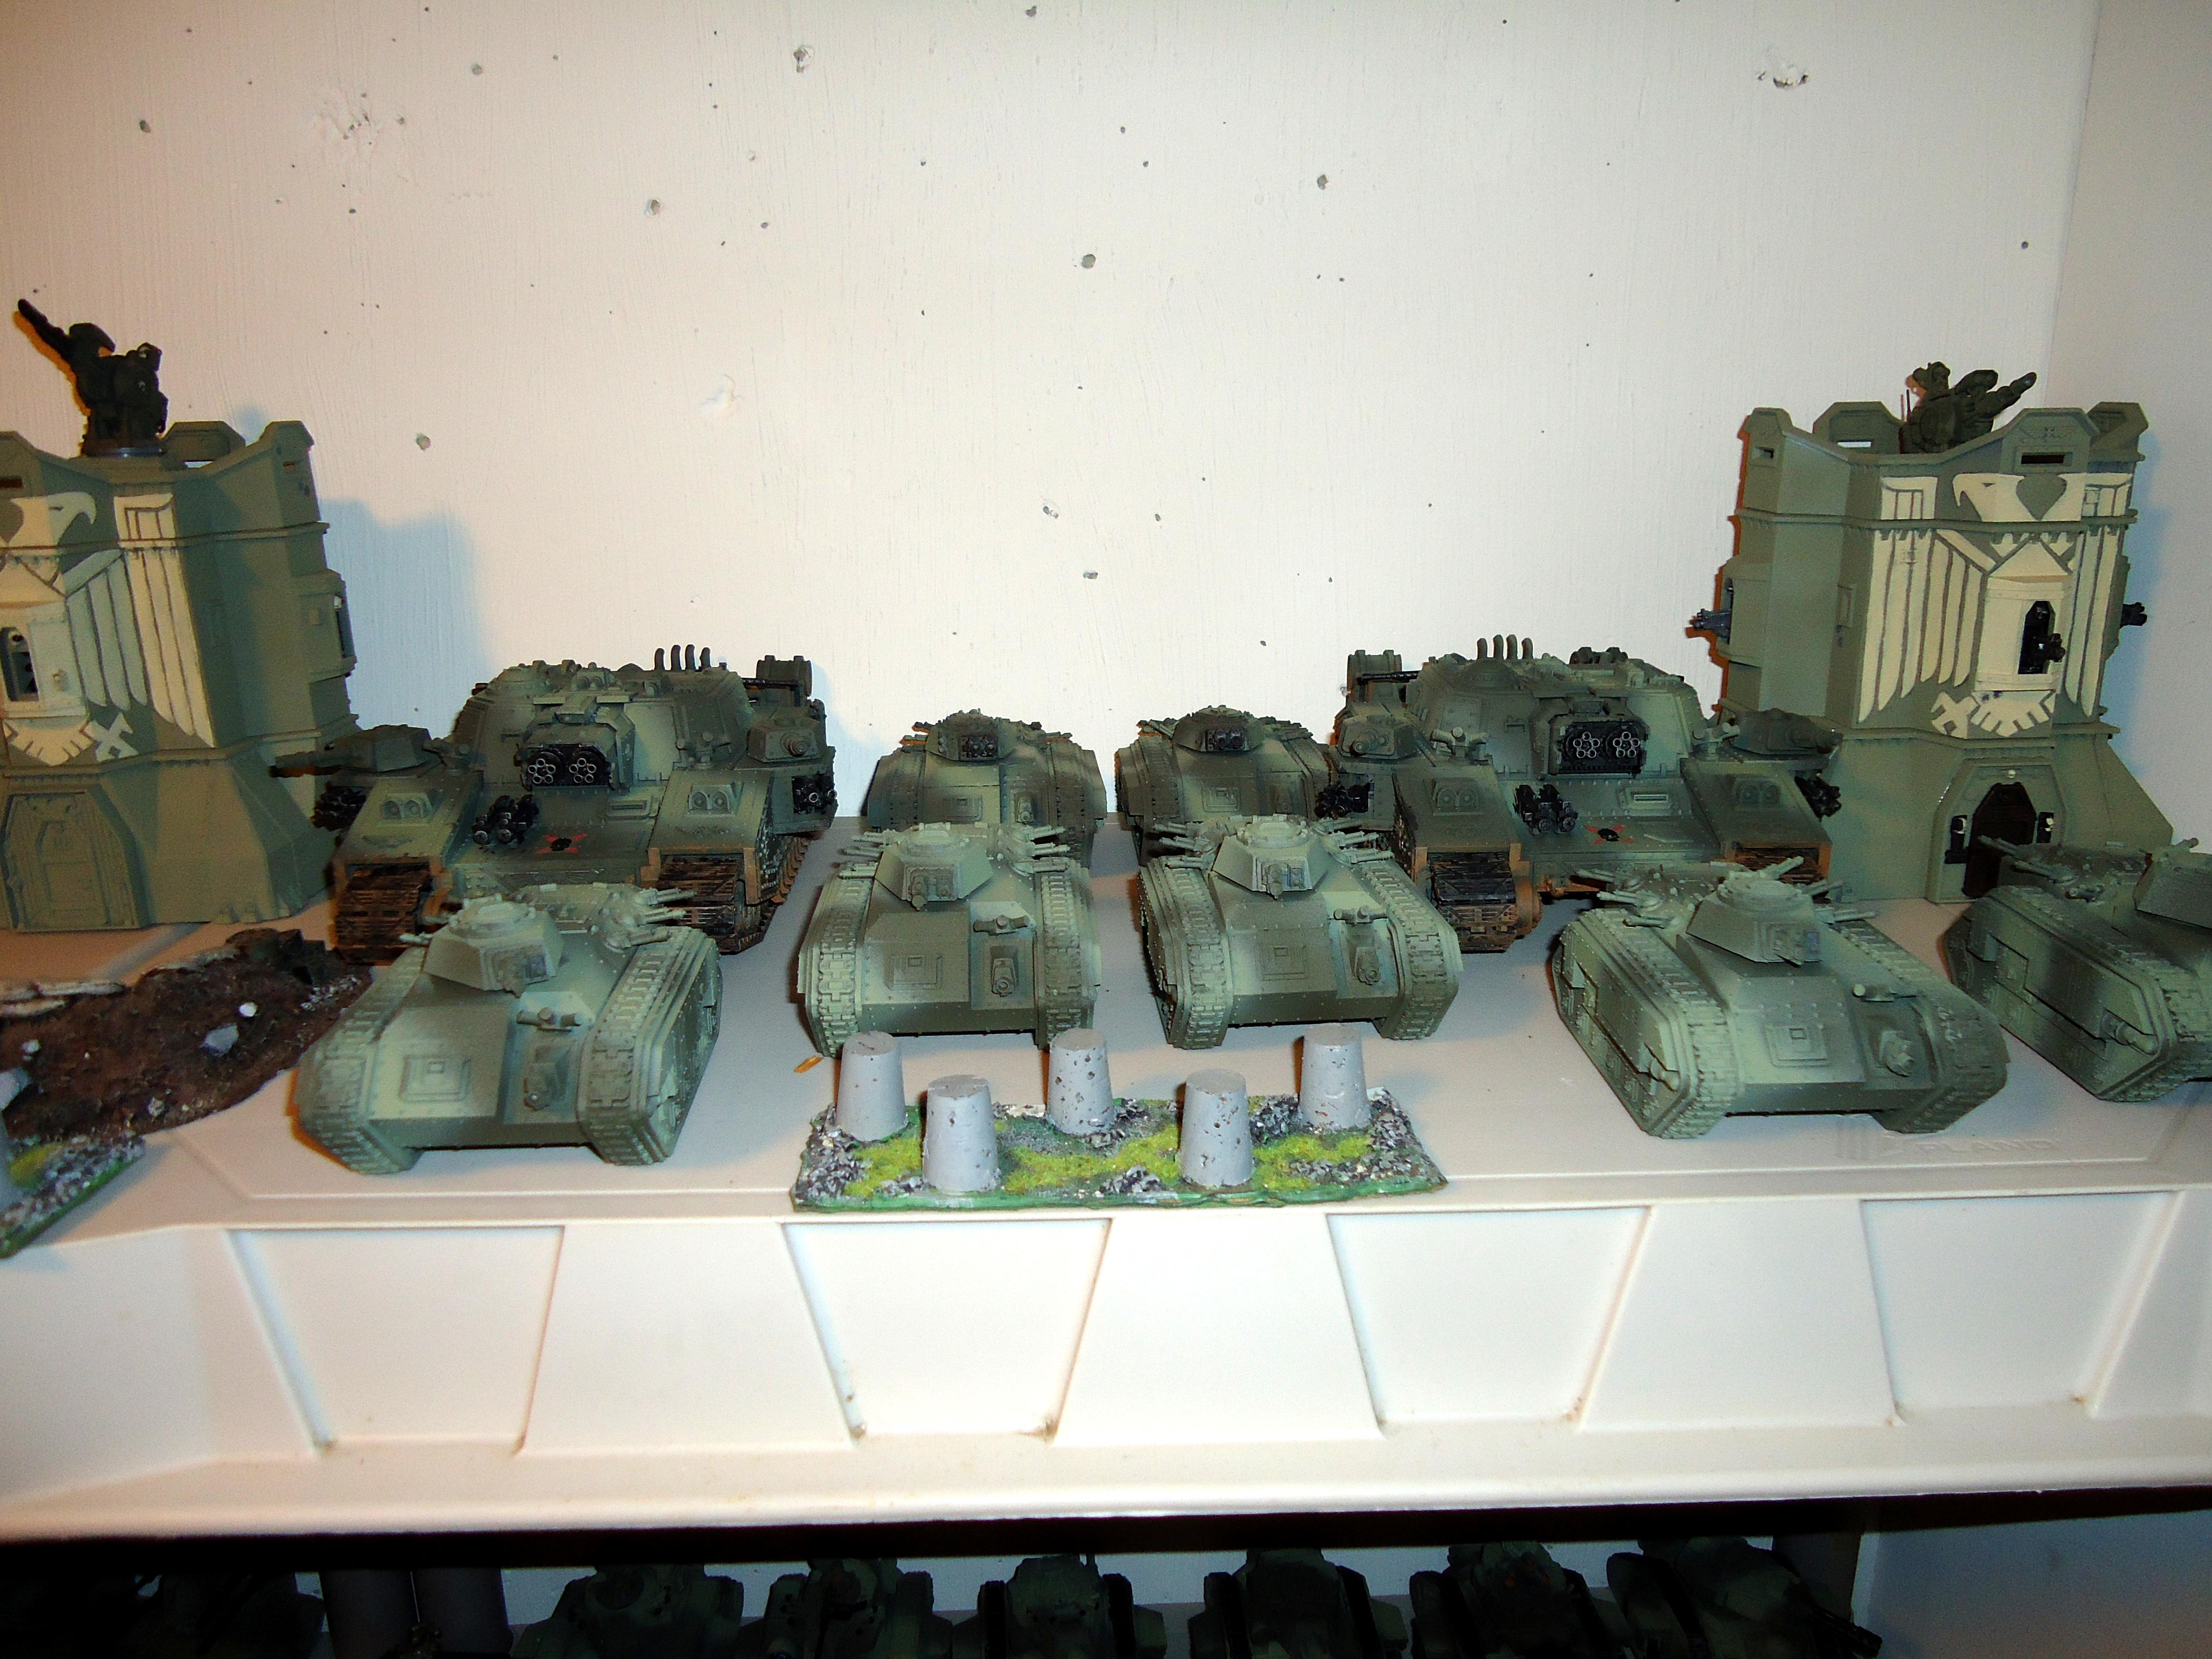 Apocalypse, Armor, Armored Company, Armored Fist, Army, Brigade, Imperial Guard, Stormlord, Super-heavy, Tank, Work In Progress